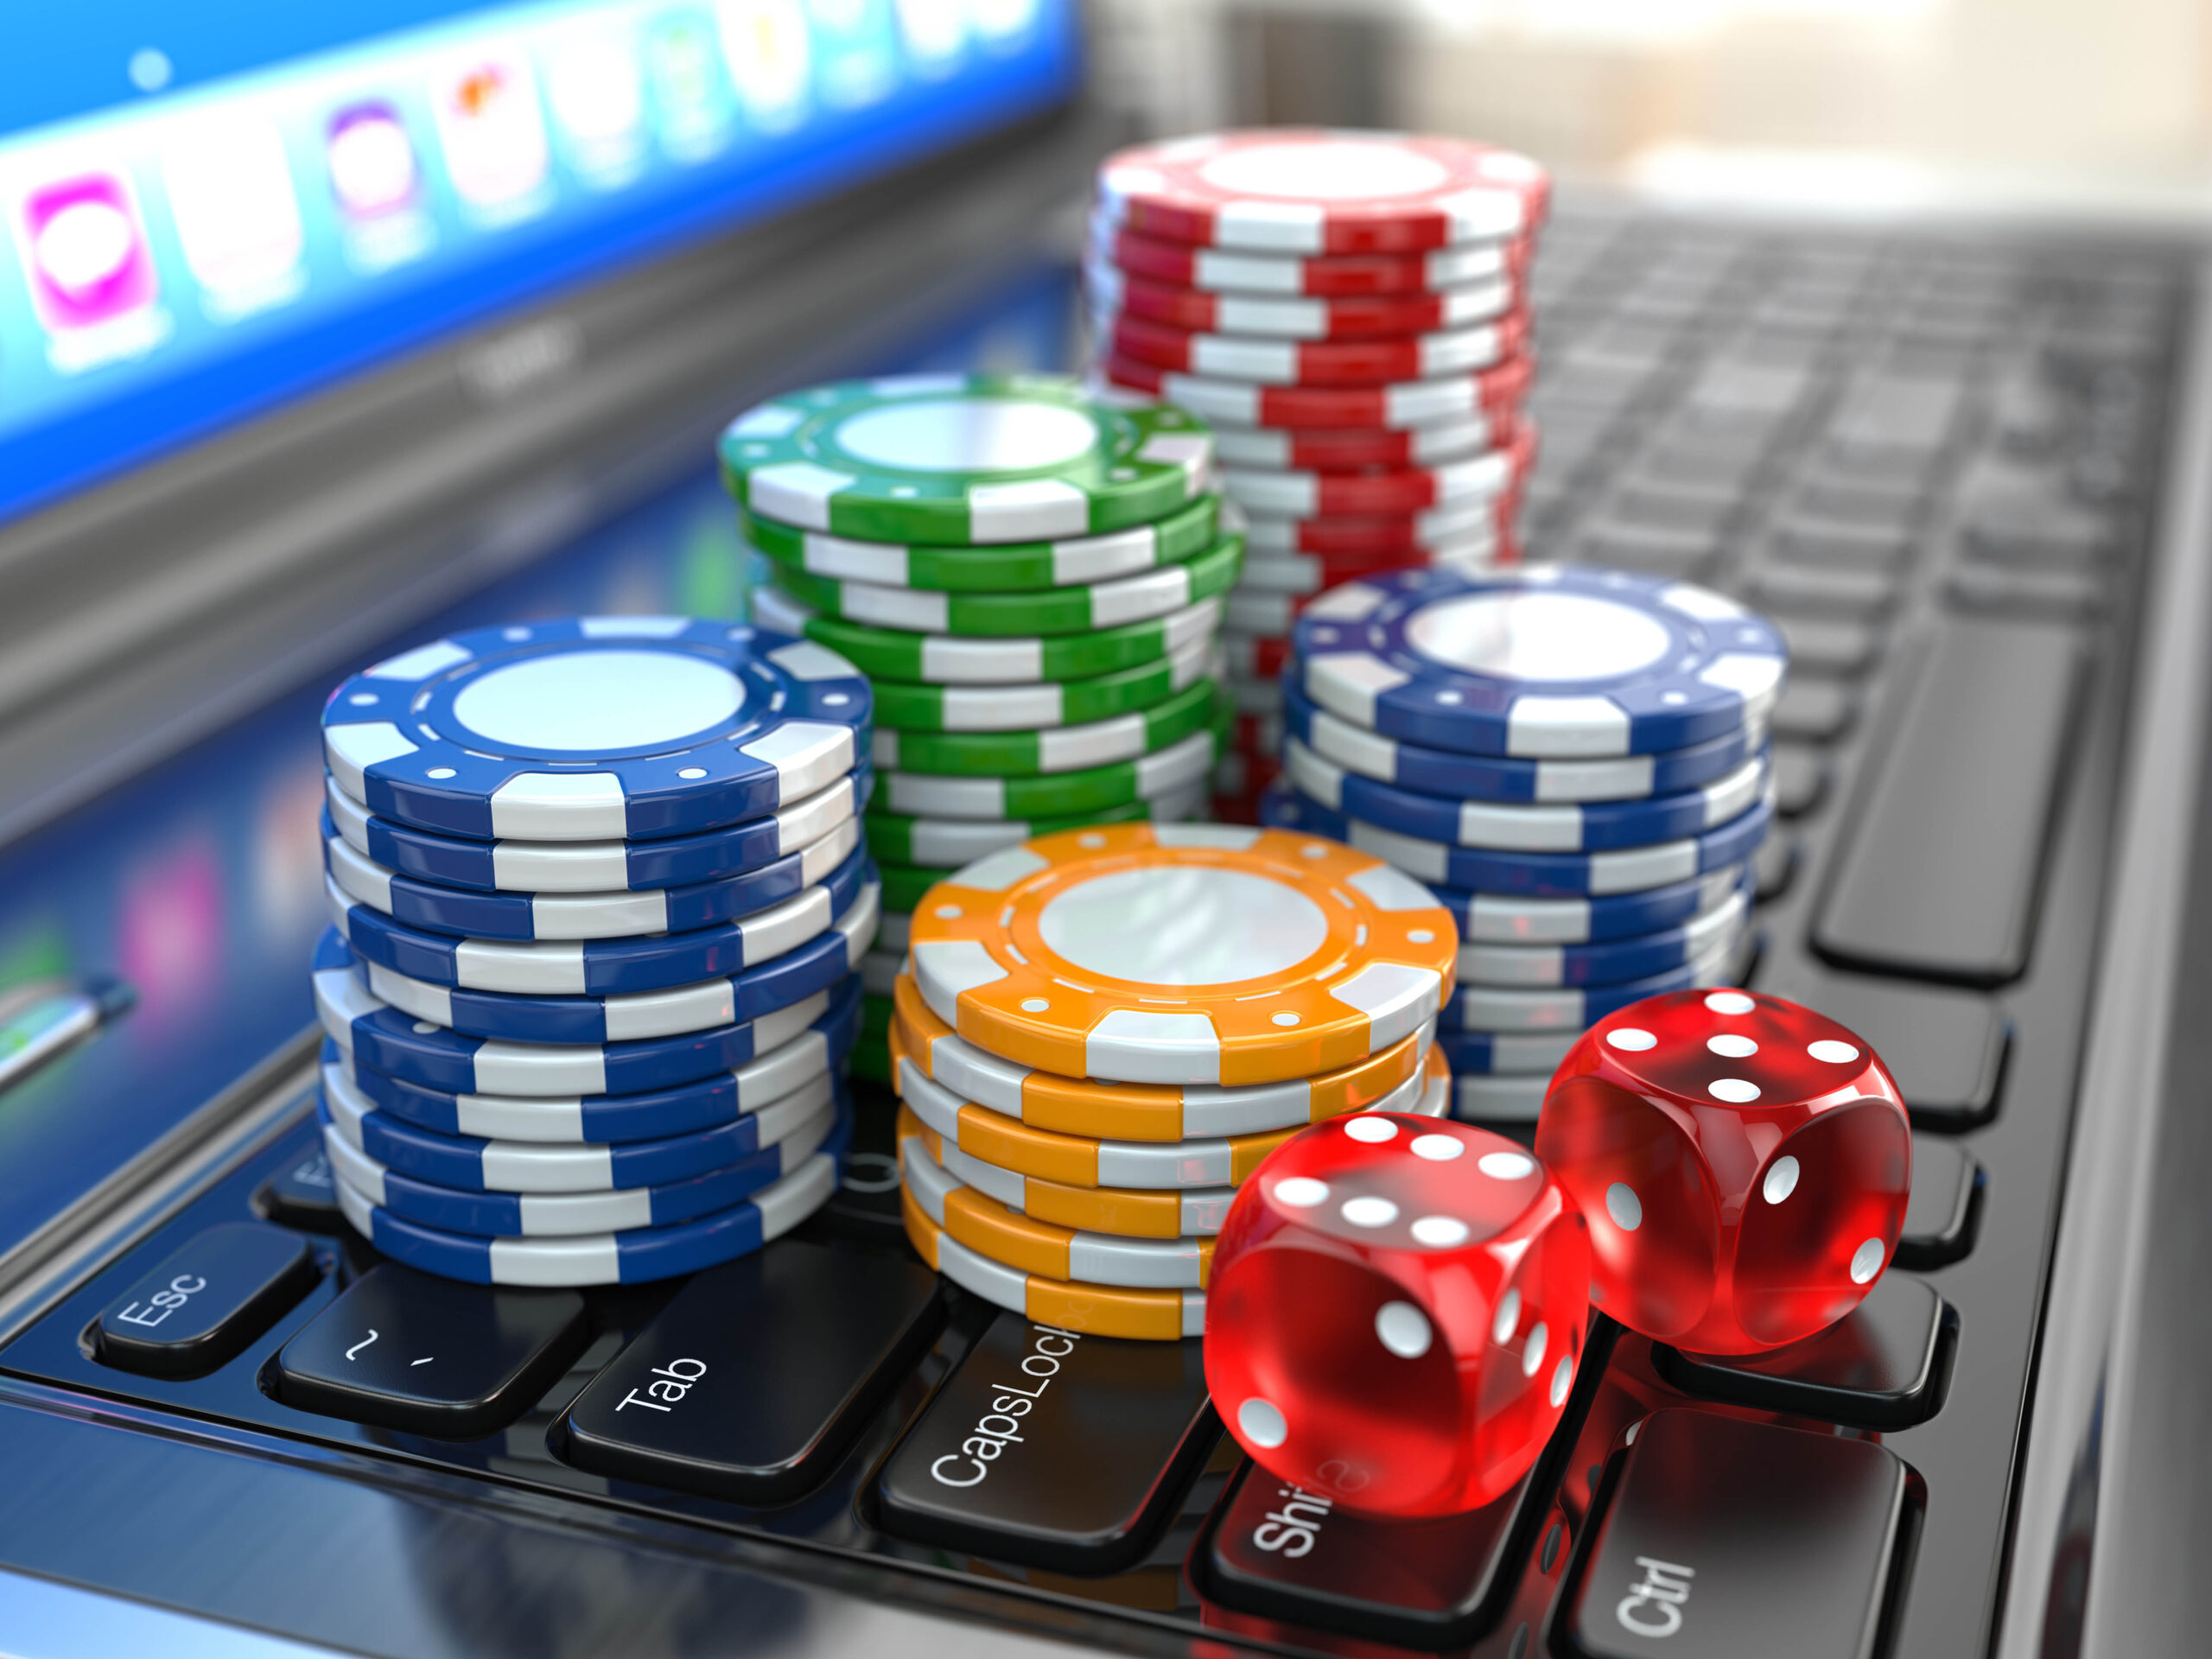 Casino Online real money-Free Promotions Differ From One Bookmaker to Another